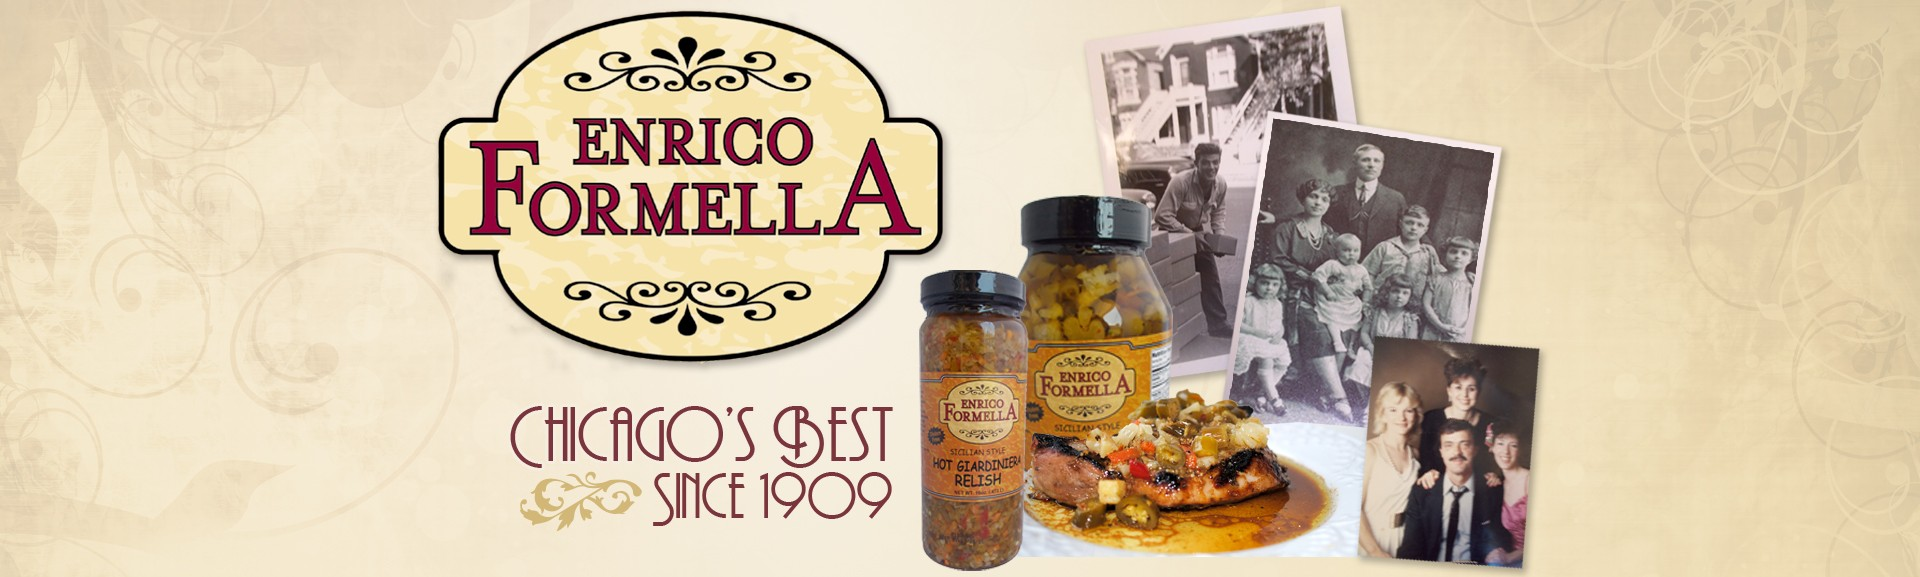 Enrico Formella: Chicago's Best since 1909